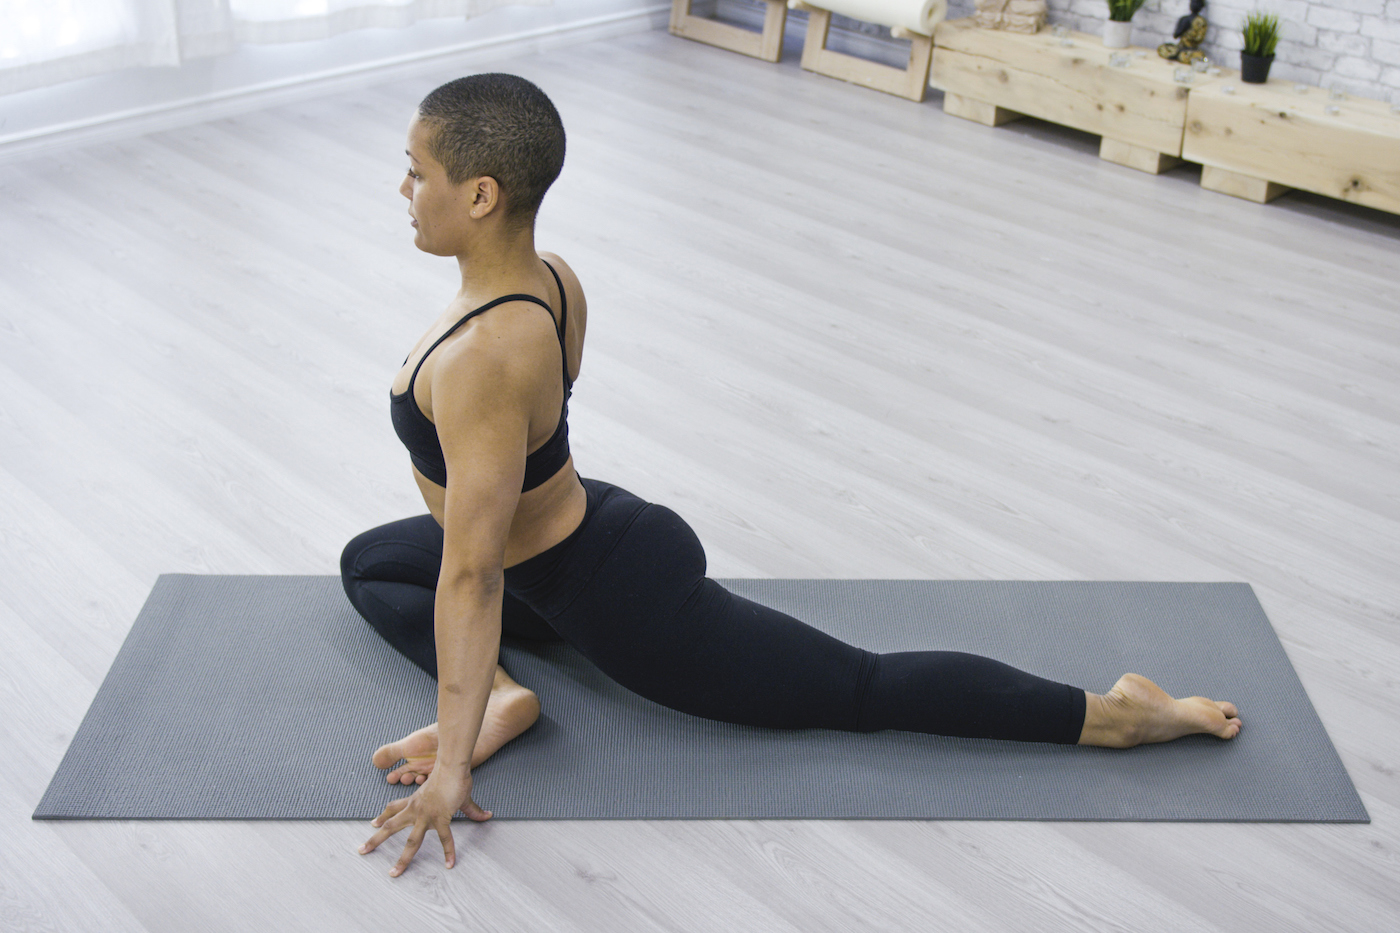 Meridian exercises through yoga are the chillest way to open up your entire body